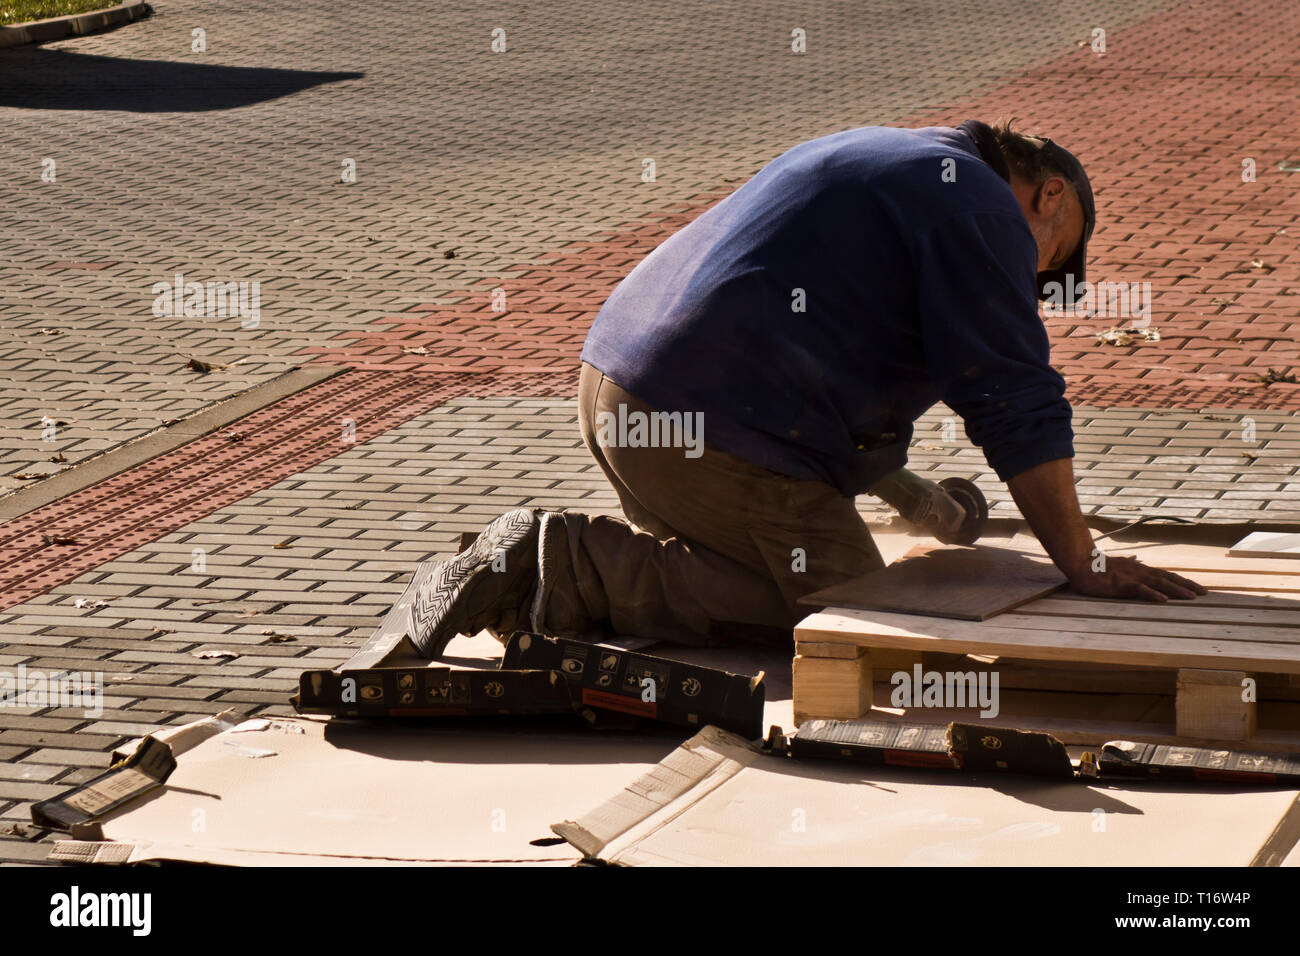 worker cutting a slab of marble using a saw with diamond blade - Stock Image